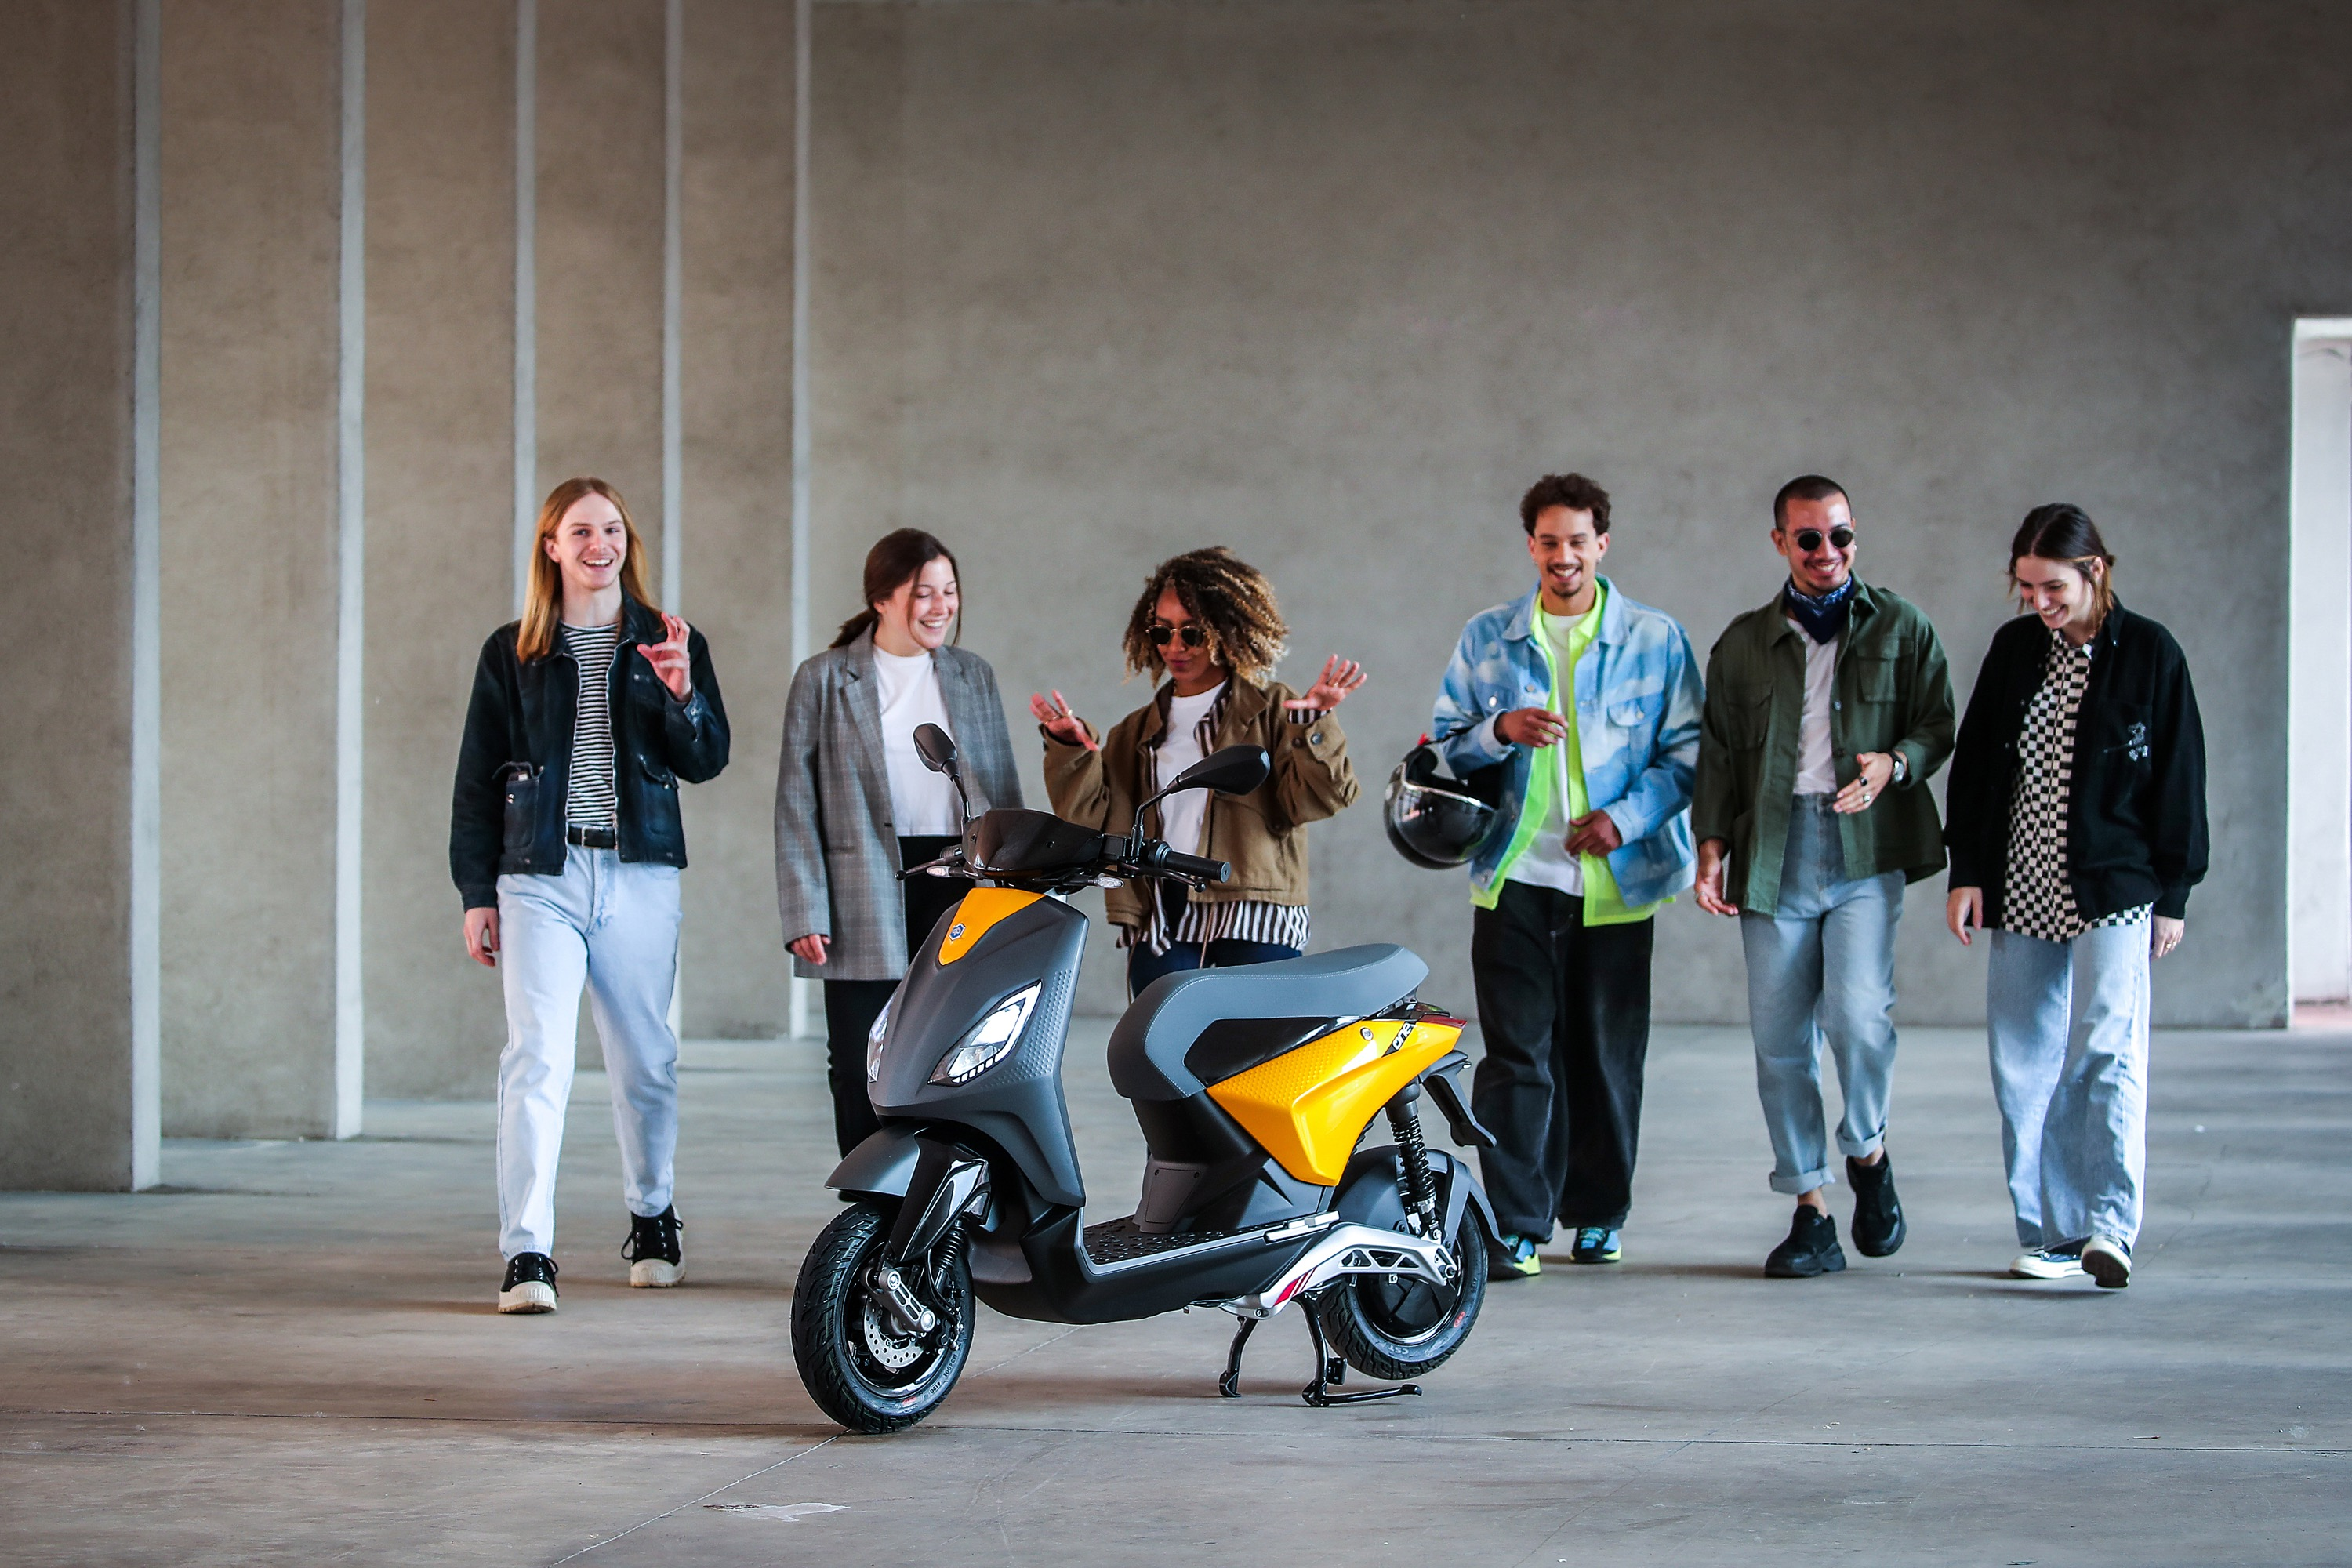 The Piaggio One electric scooter is being squarely aimed at young riders, and will launch in Europe from the end of June 2021